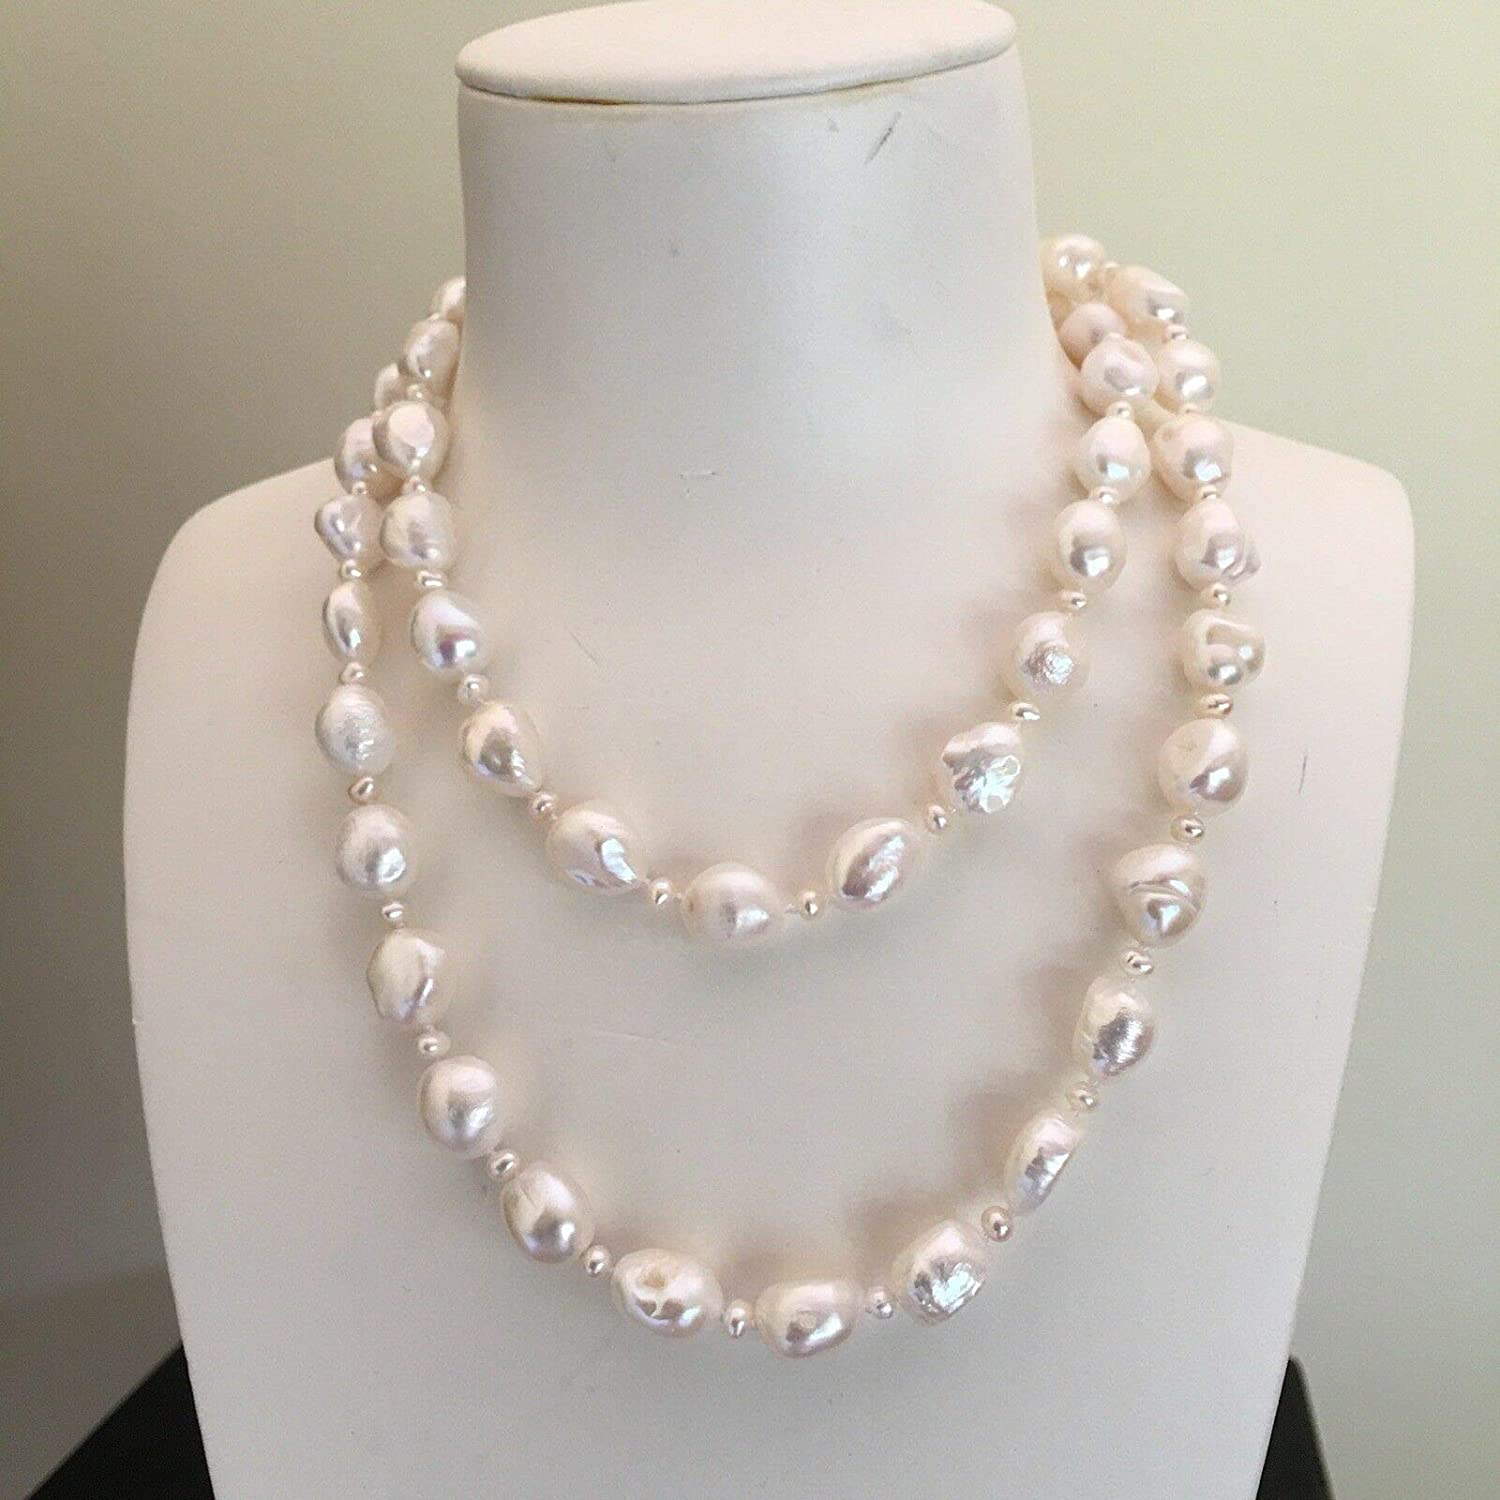 N A Large Baroque Freshwater Pearl 1213mm Natural White 85cm necklace